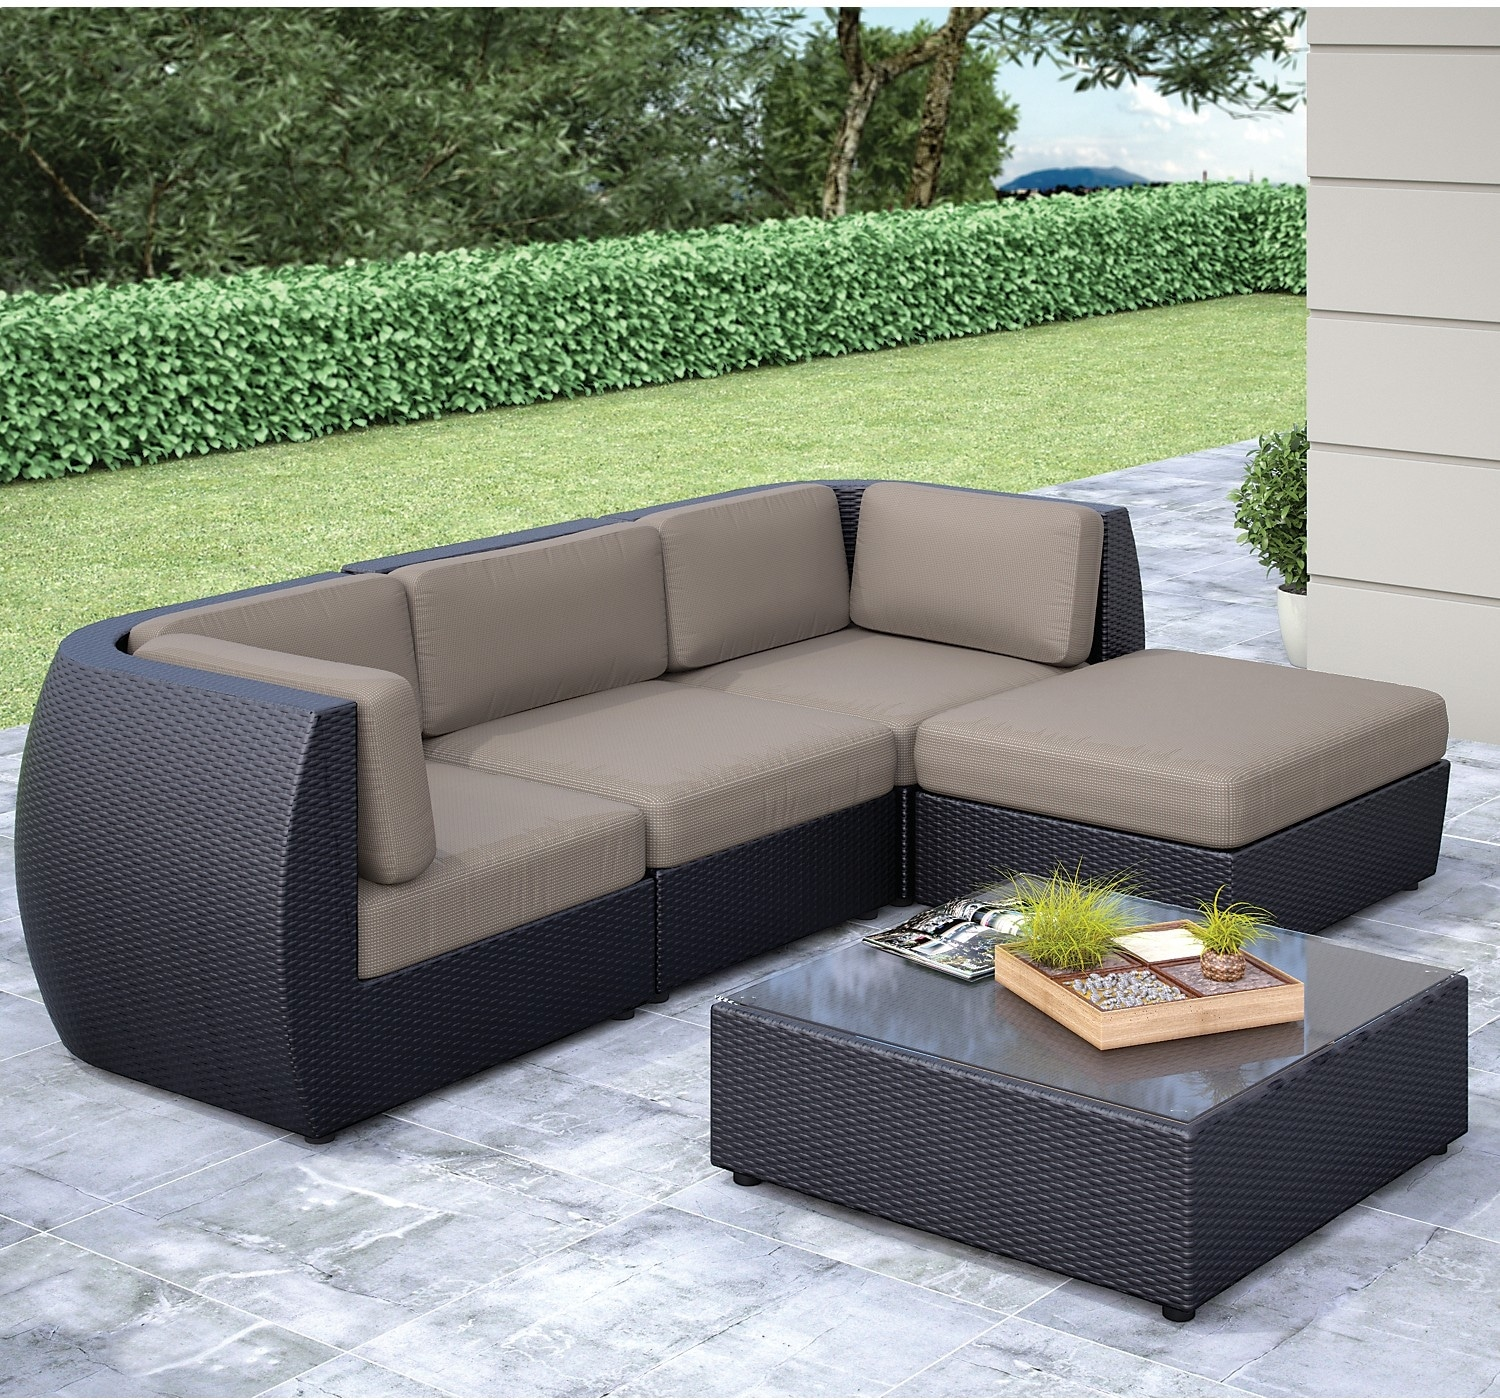 Outdoor Furniture - Seattle Sofa, Ottoman and Table Set